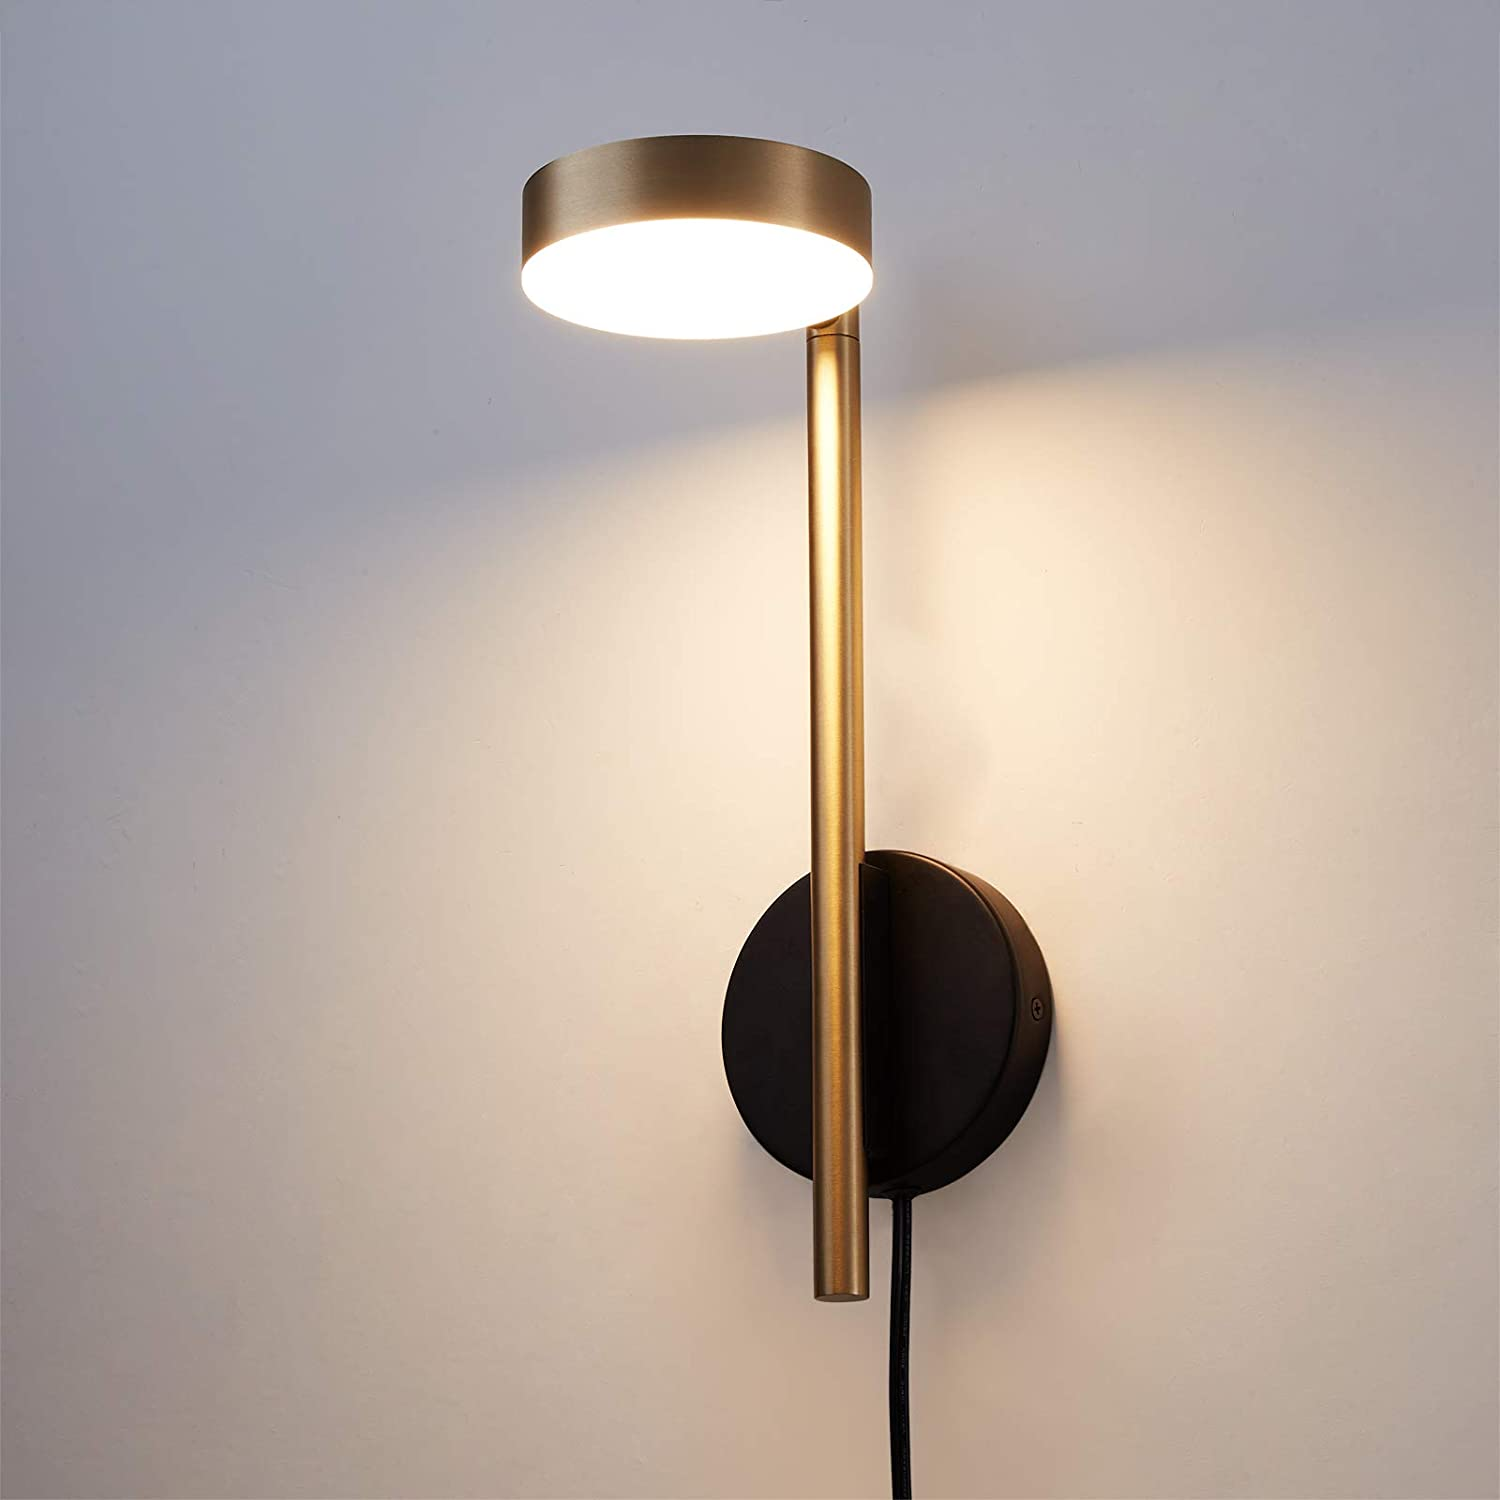 Adjustable LED Wall Lamp Plug in Wall Sconce for Bedroom Antique Brass Finished Wall Light Fixture for Living Room Home Hallway Dining with Switch 6W 3000K